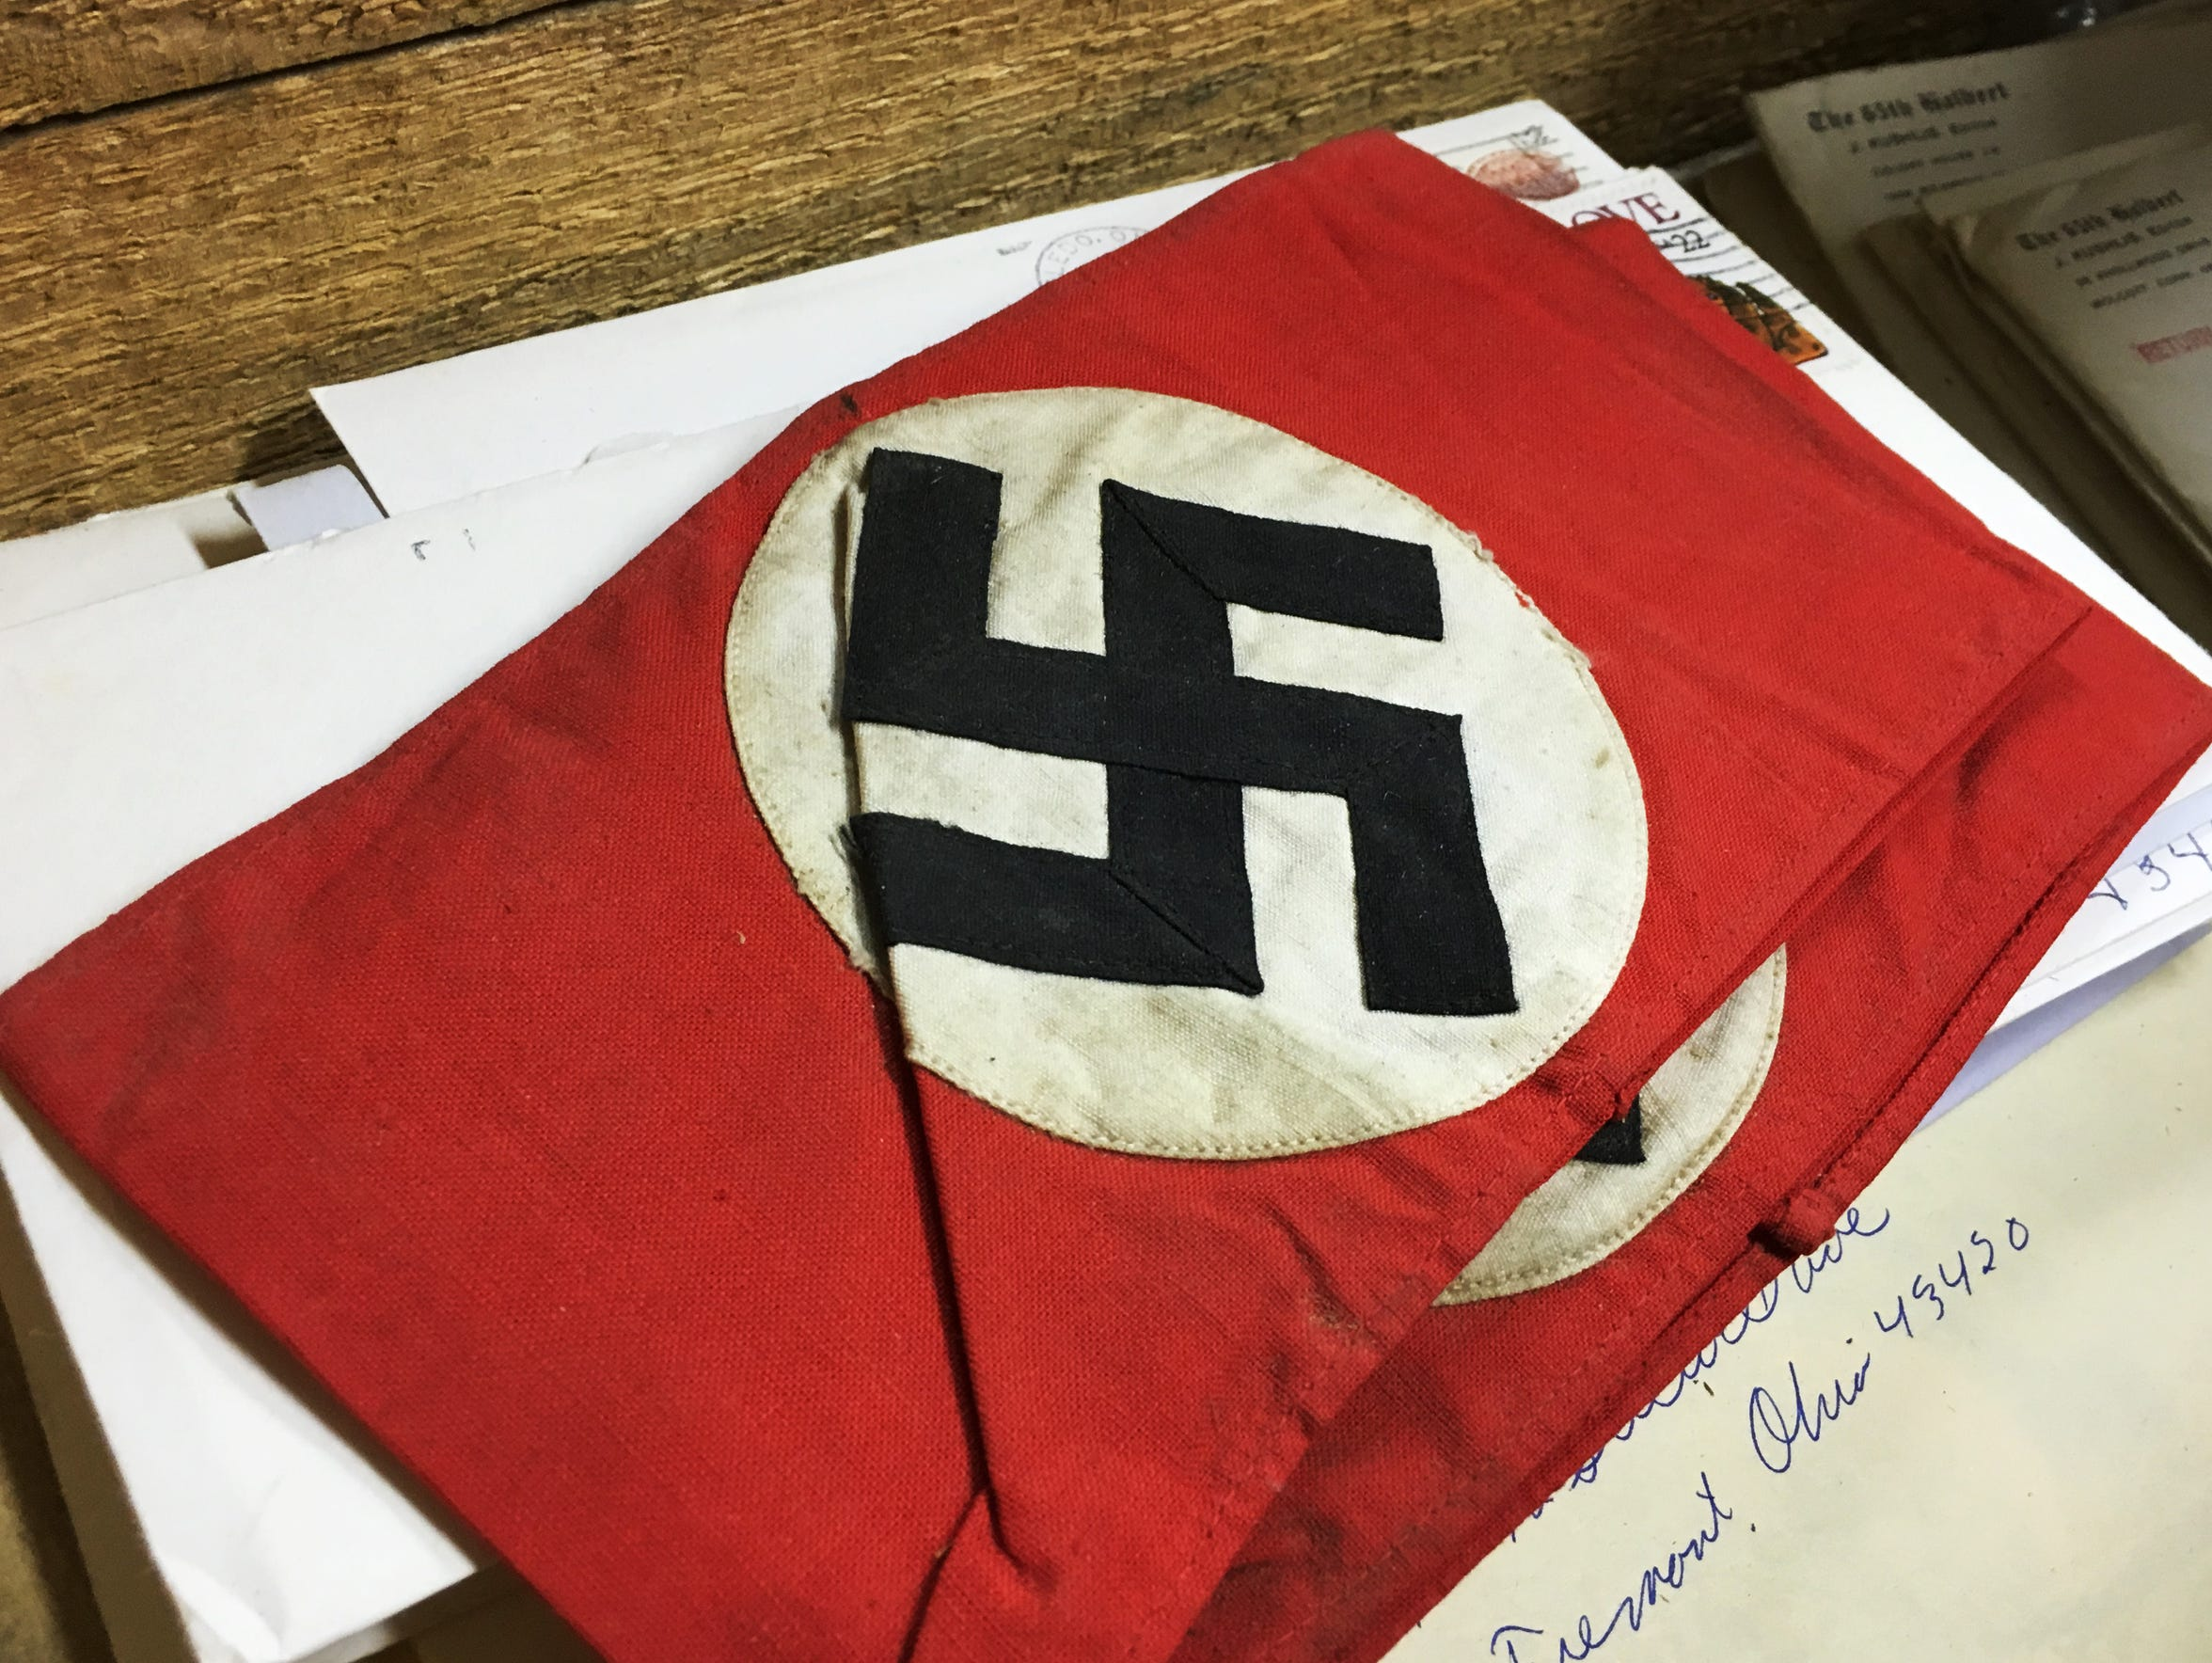 Robert Parman took a Nazi armbands from a German home